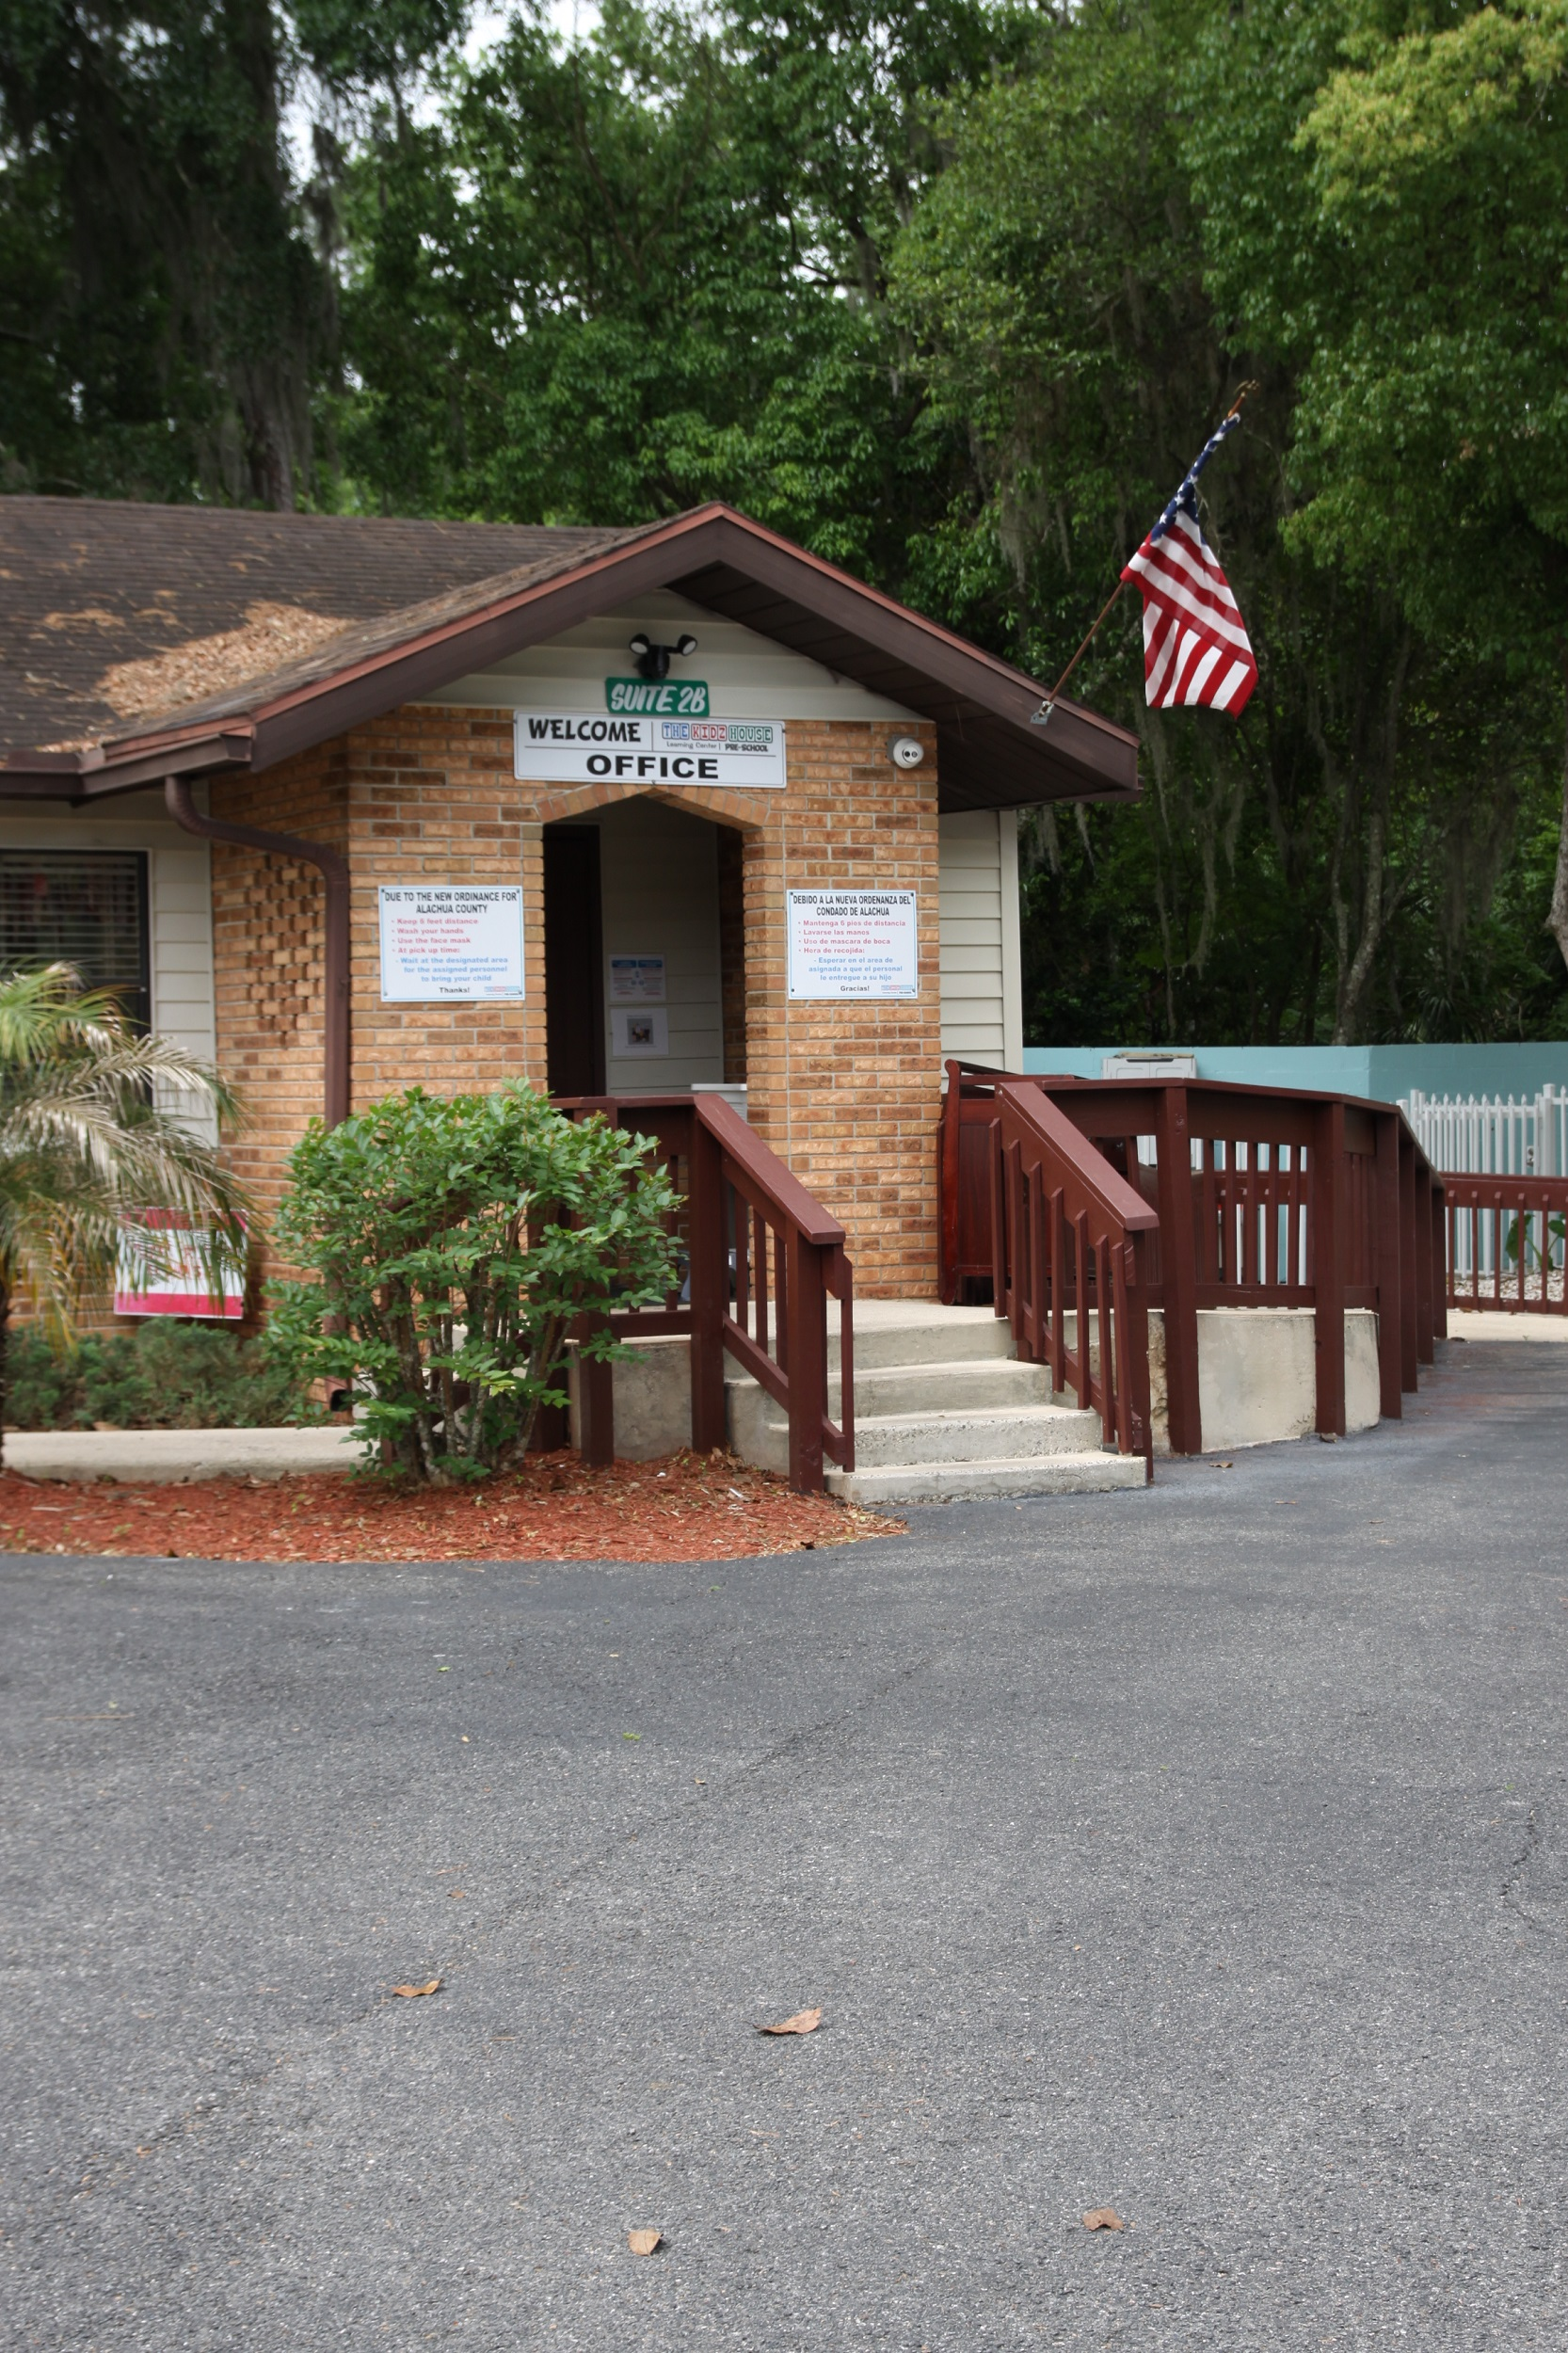 The Kidz House Daycare Welcome Office